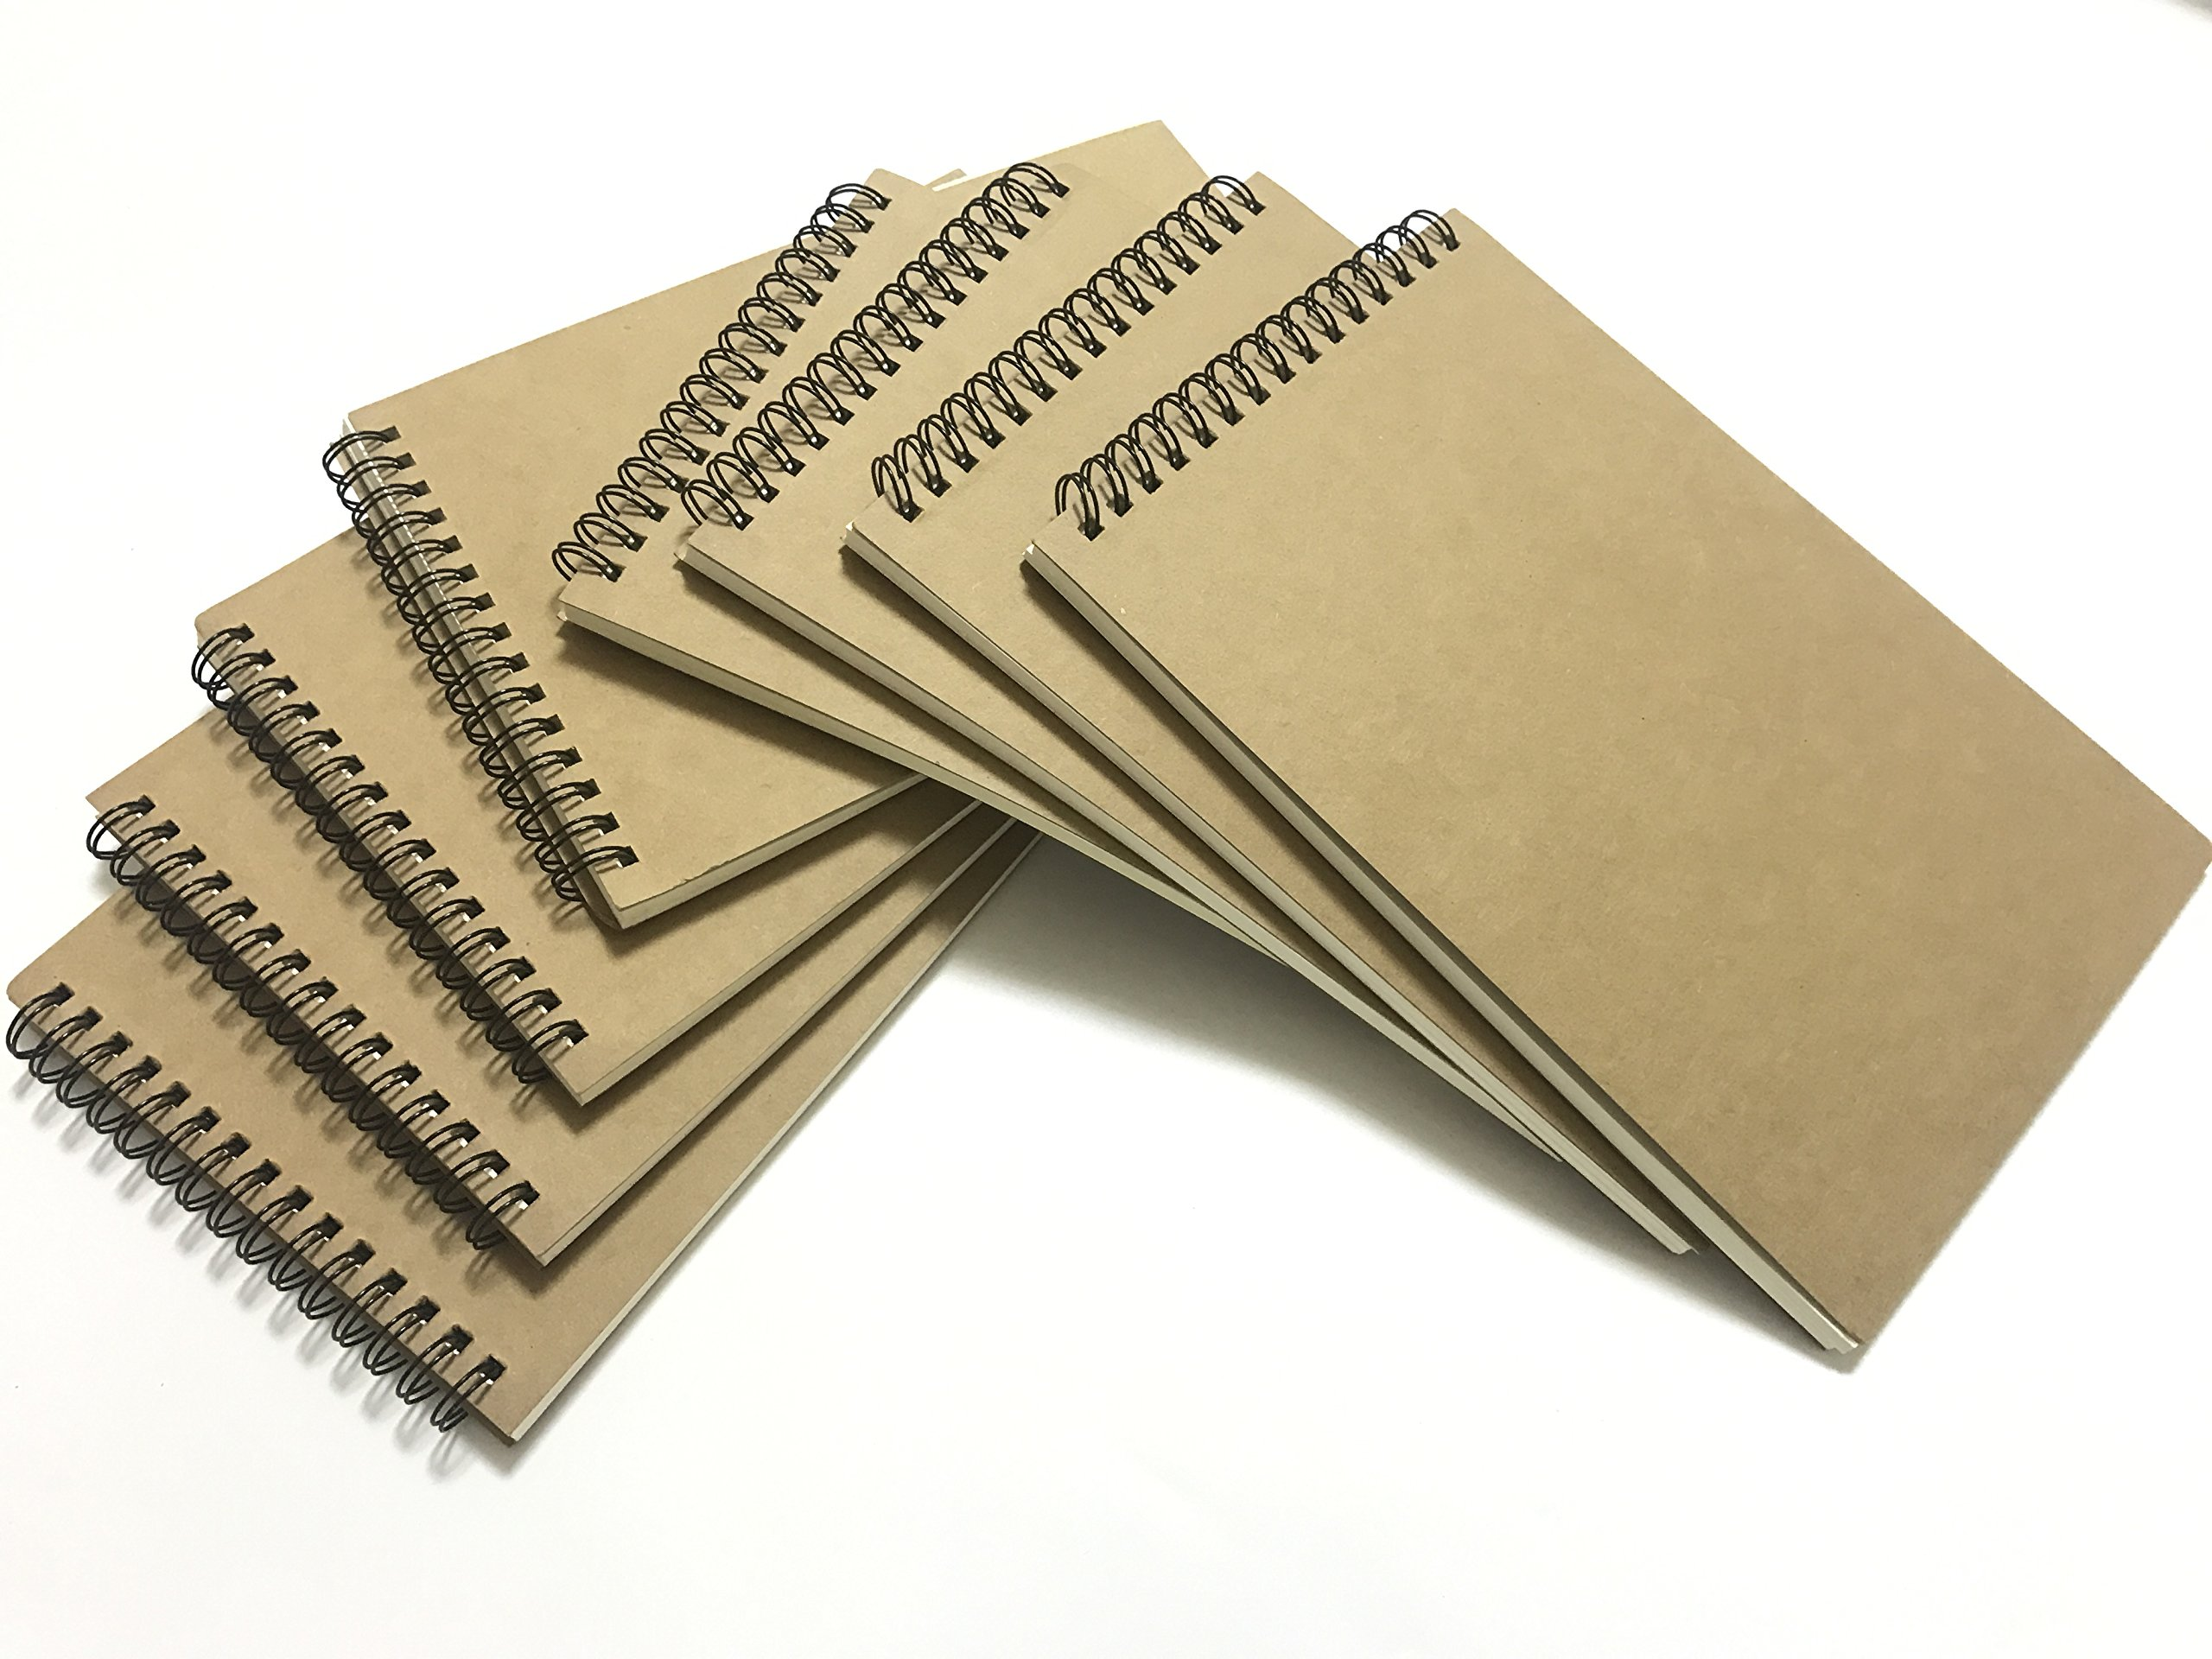 VEEPPO A5 Spiral Notebooks and Journals Bulk Ruled Line 8 Pack Cardboard Kraft Cover Ruled Line Thick Cream Paper Notepads 14x21cm (Horizontal Lined White-8 Pack)